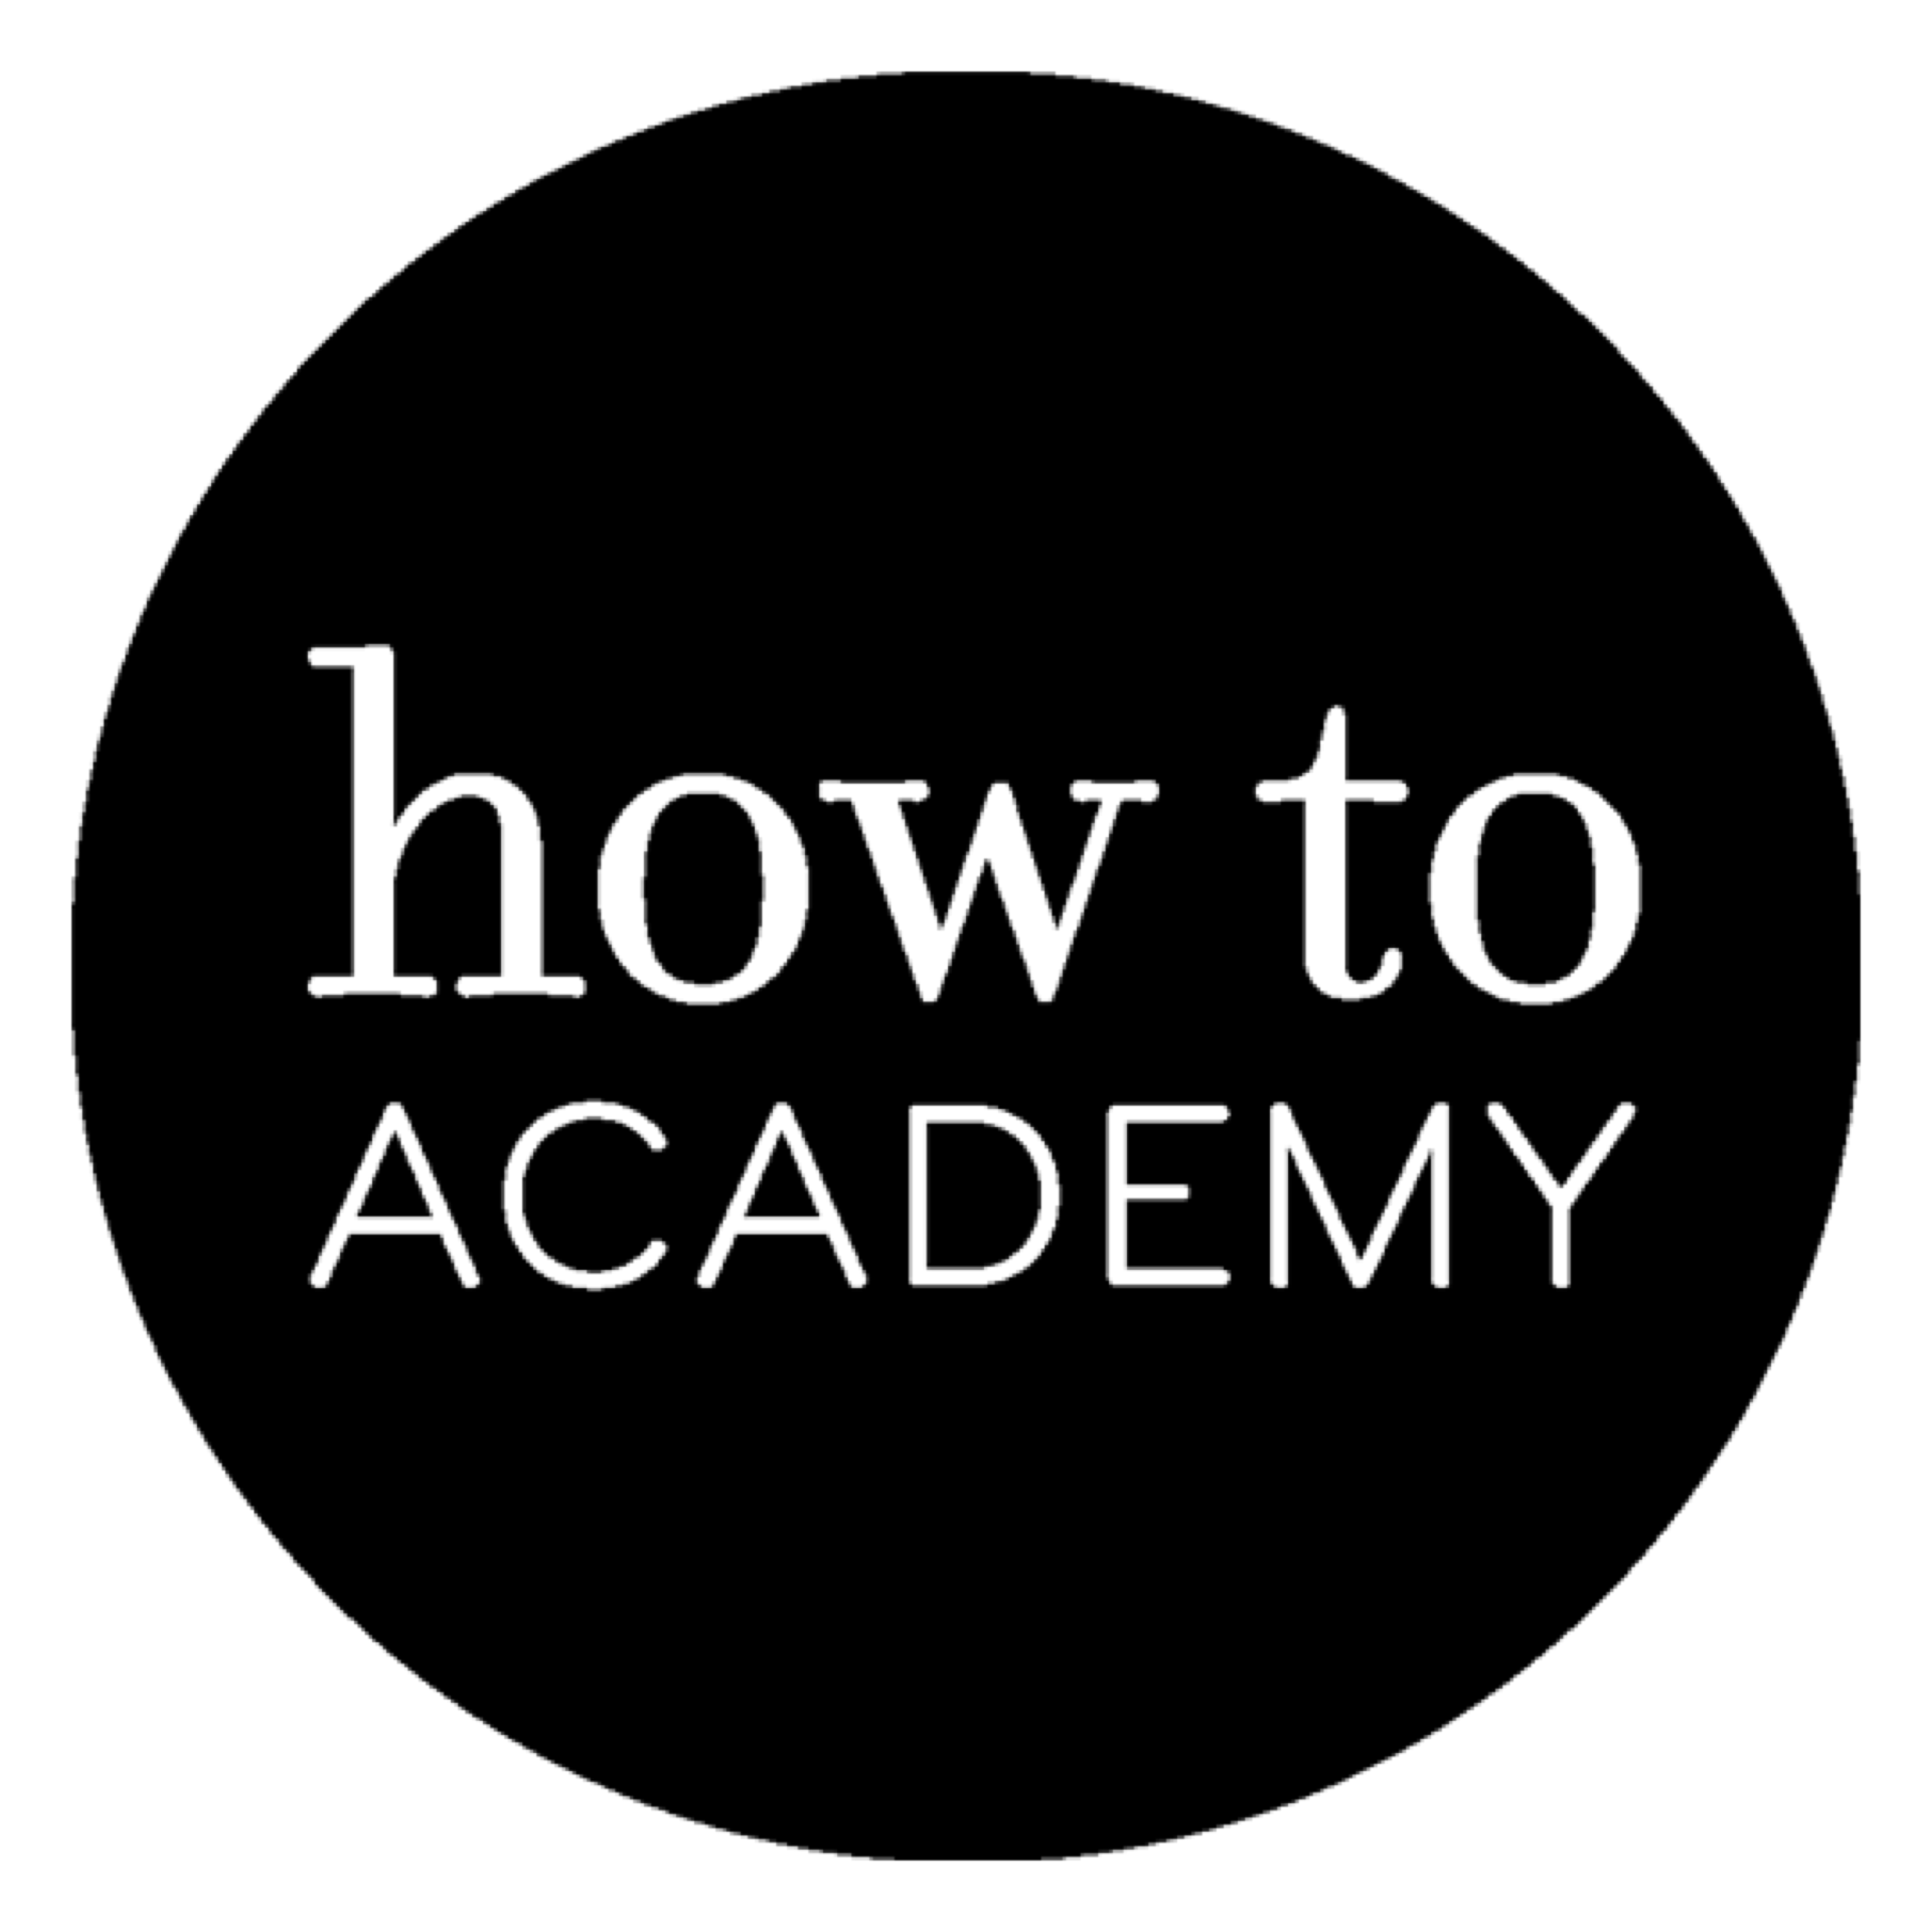 How To Academy icon